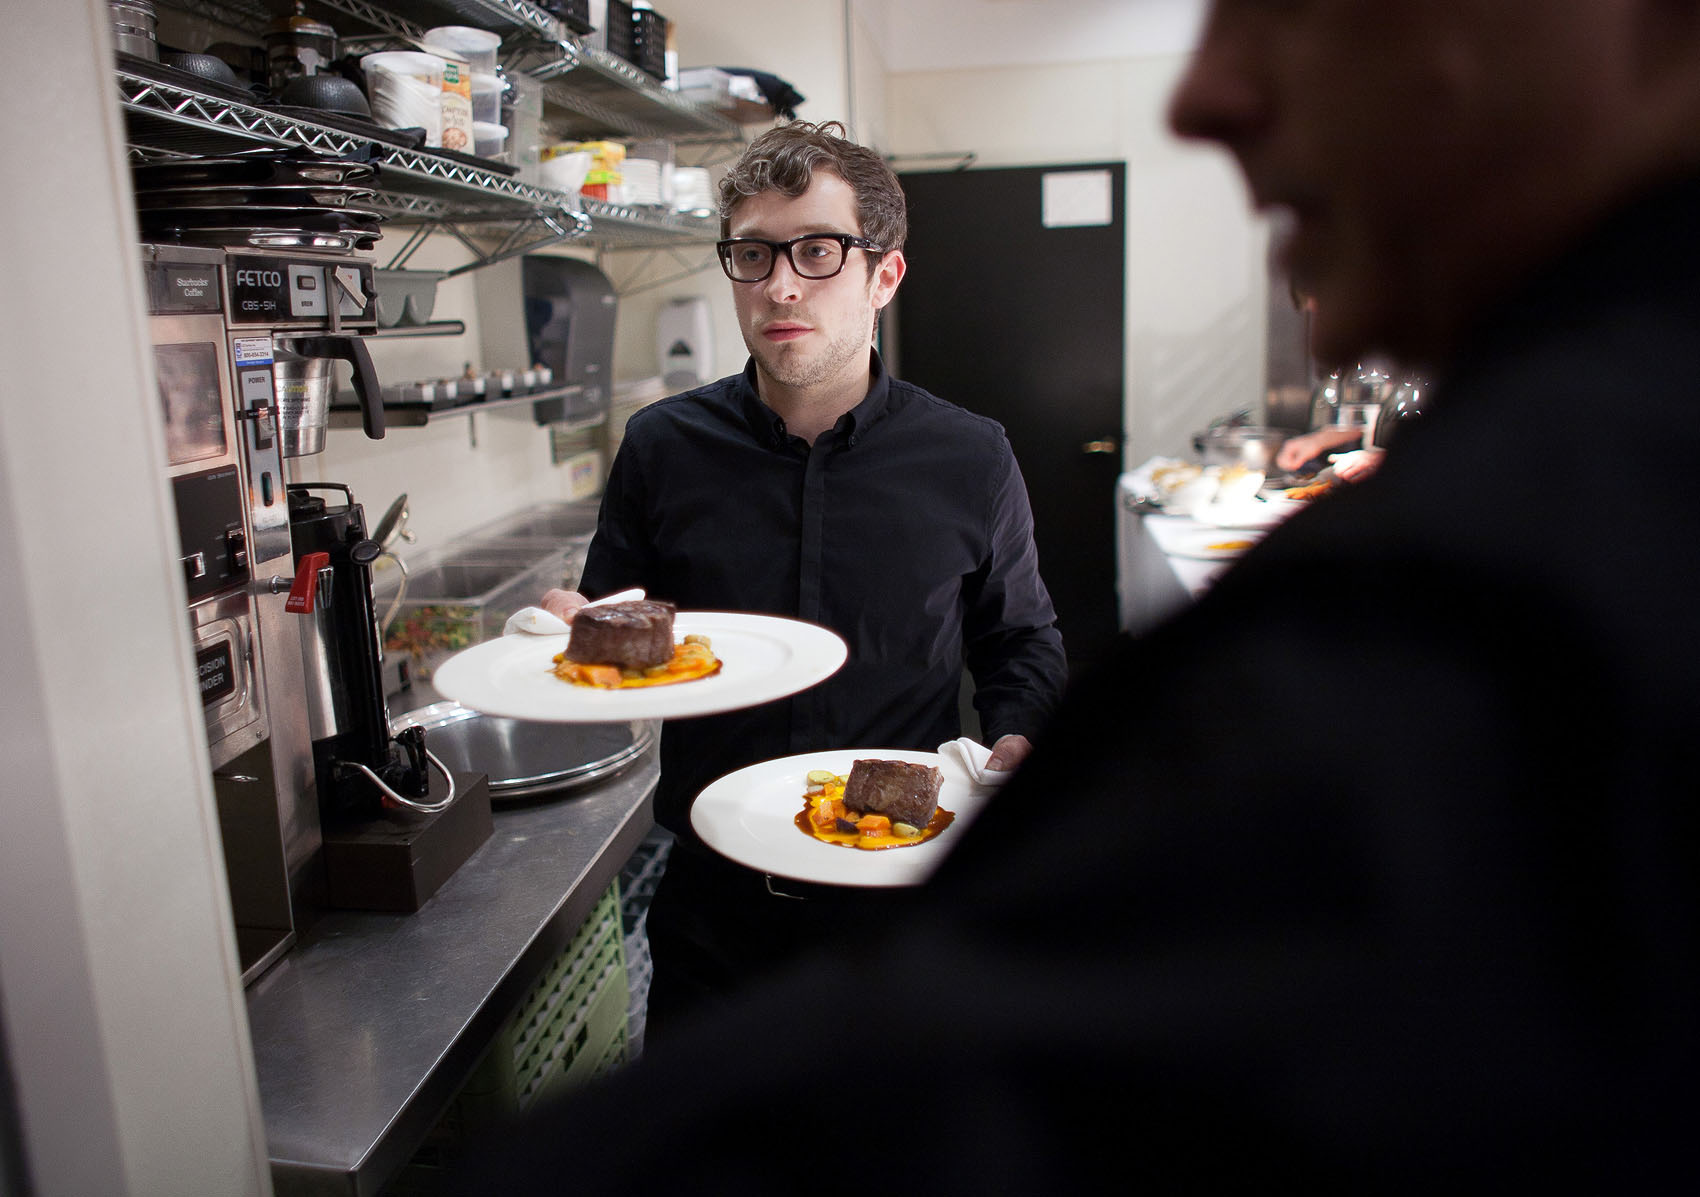 Server, Canlis restaurant, Seattle.